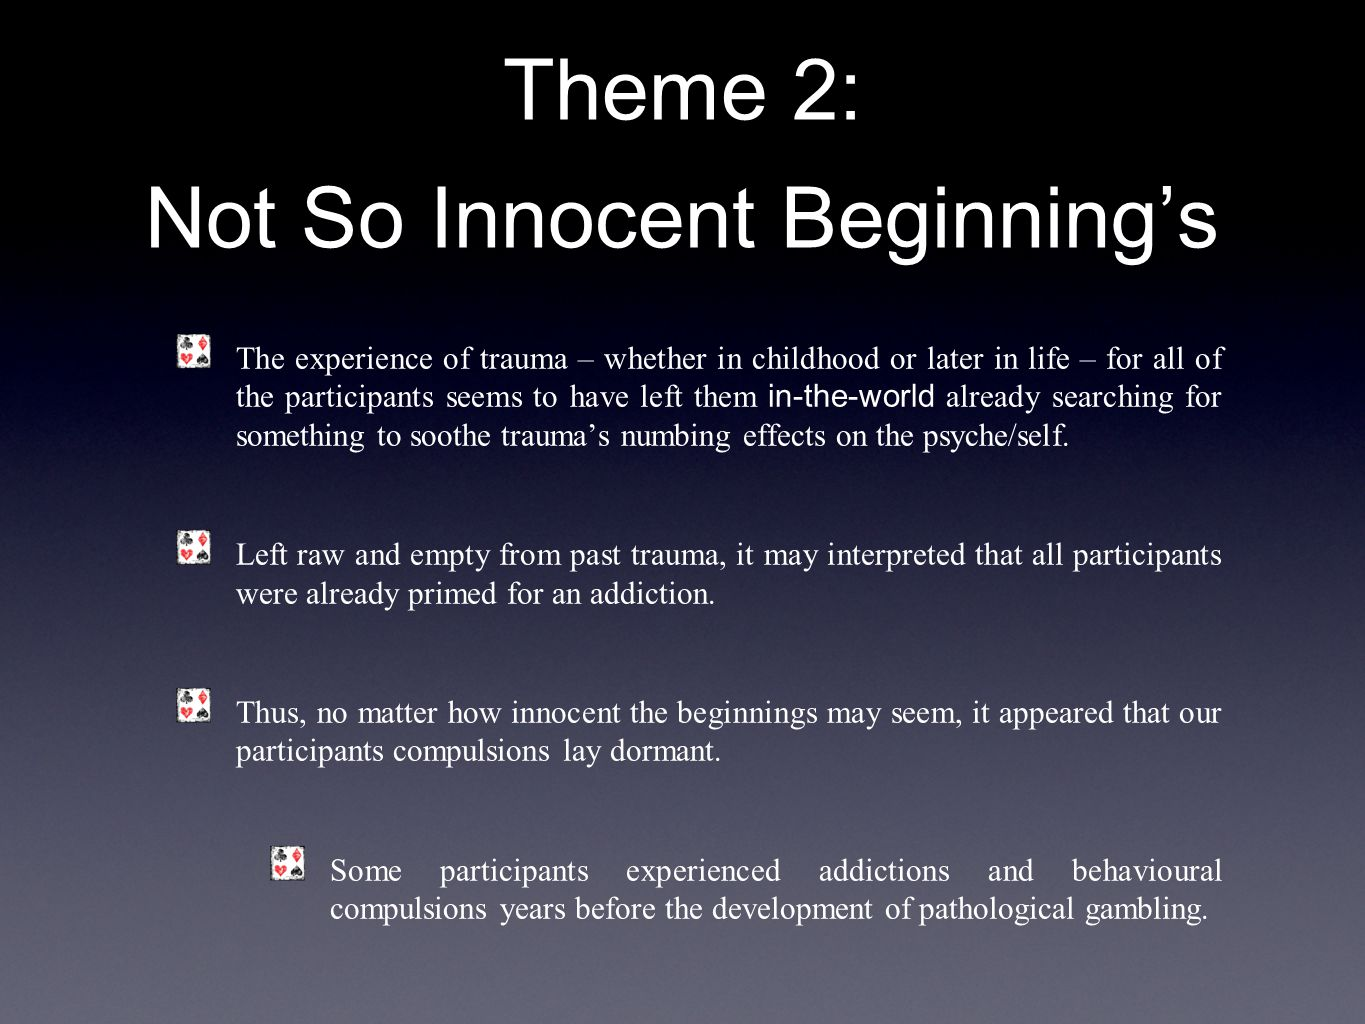 Theme 2: Not So Innocent Beginning's The experience of trauma – whether in childhood or later in life – for all of the participants seems to have left them in-the-world already searching for something to soothe trauma's numbing effects on the psyche/self.